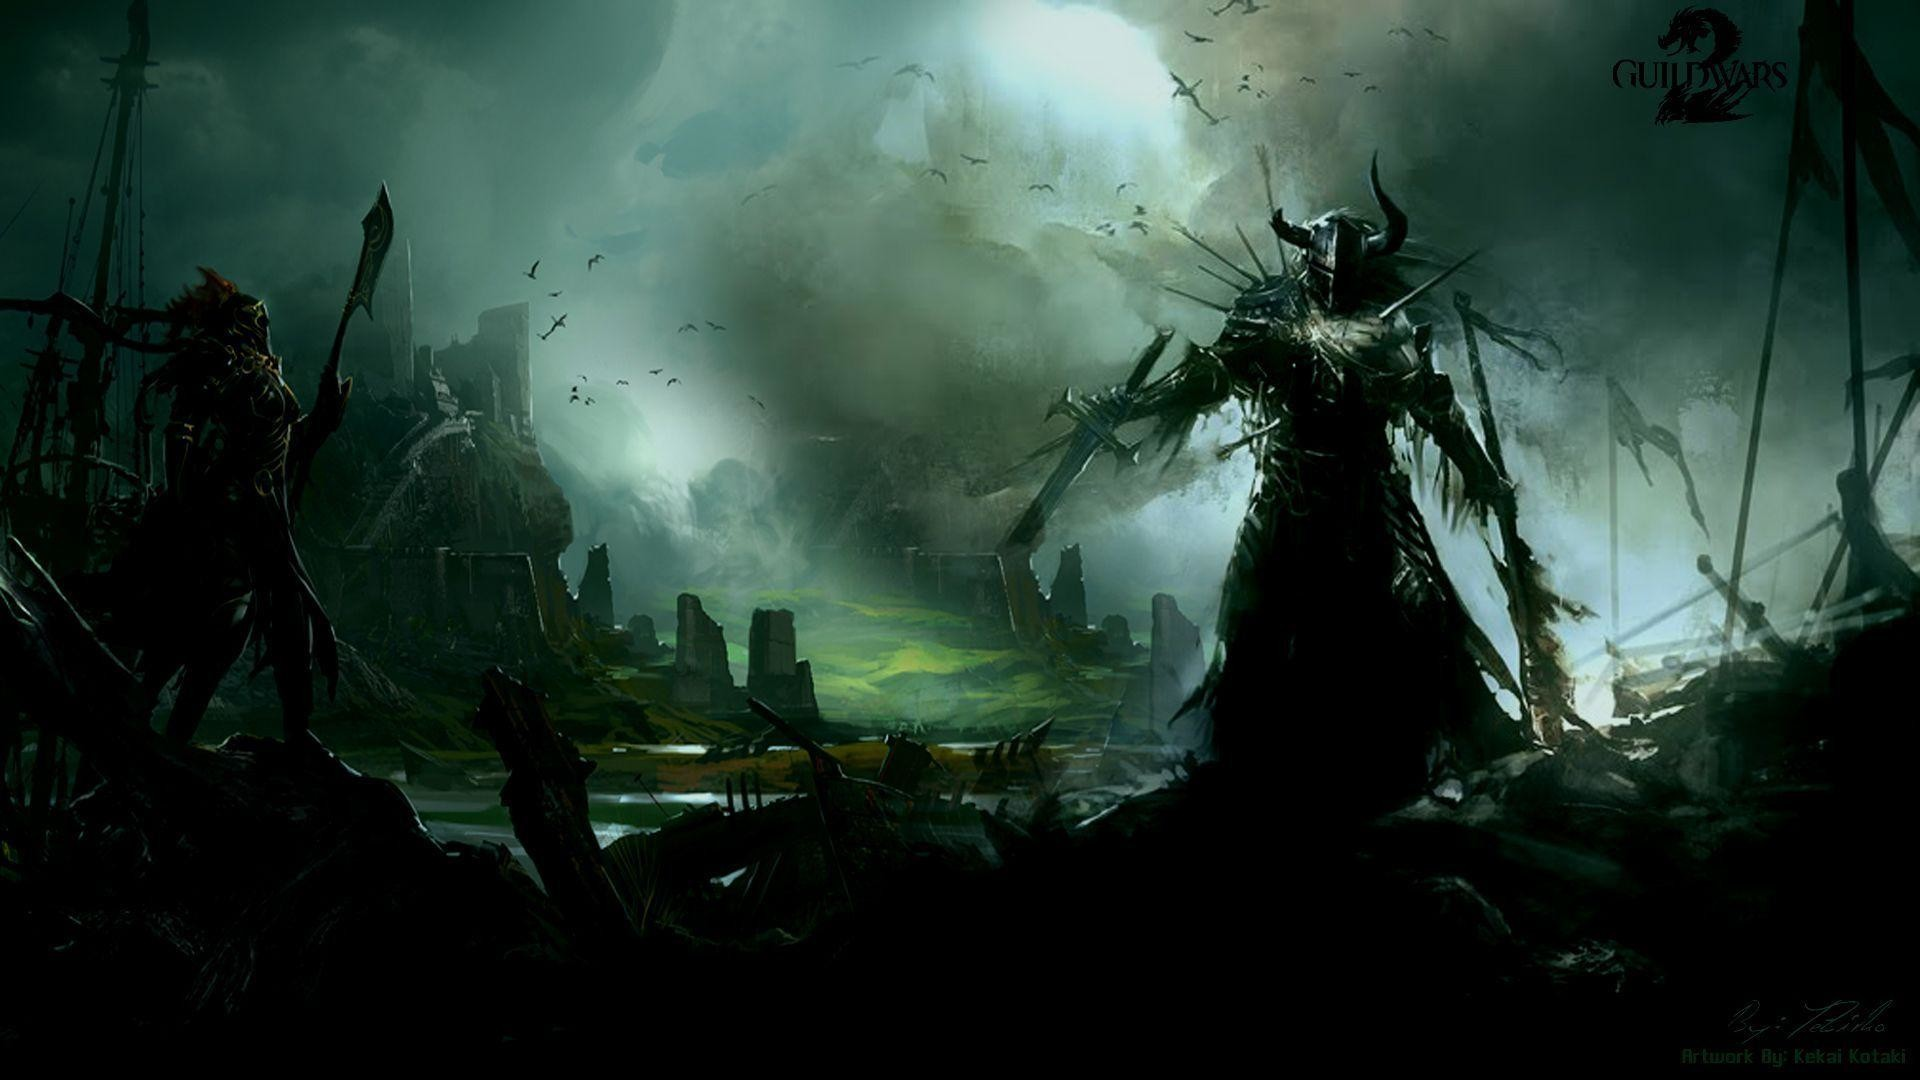 Epic Music Wallpapers Hd Background 9 HD Wallpapers | aladdino.